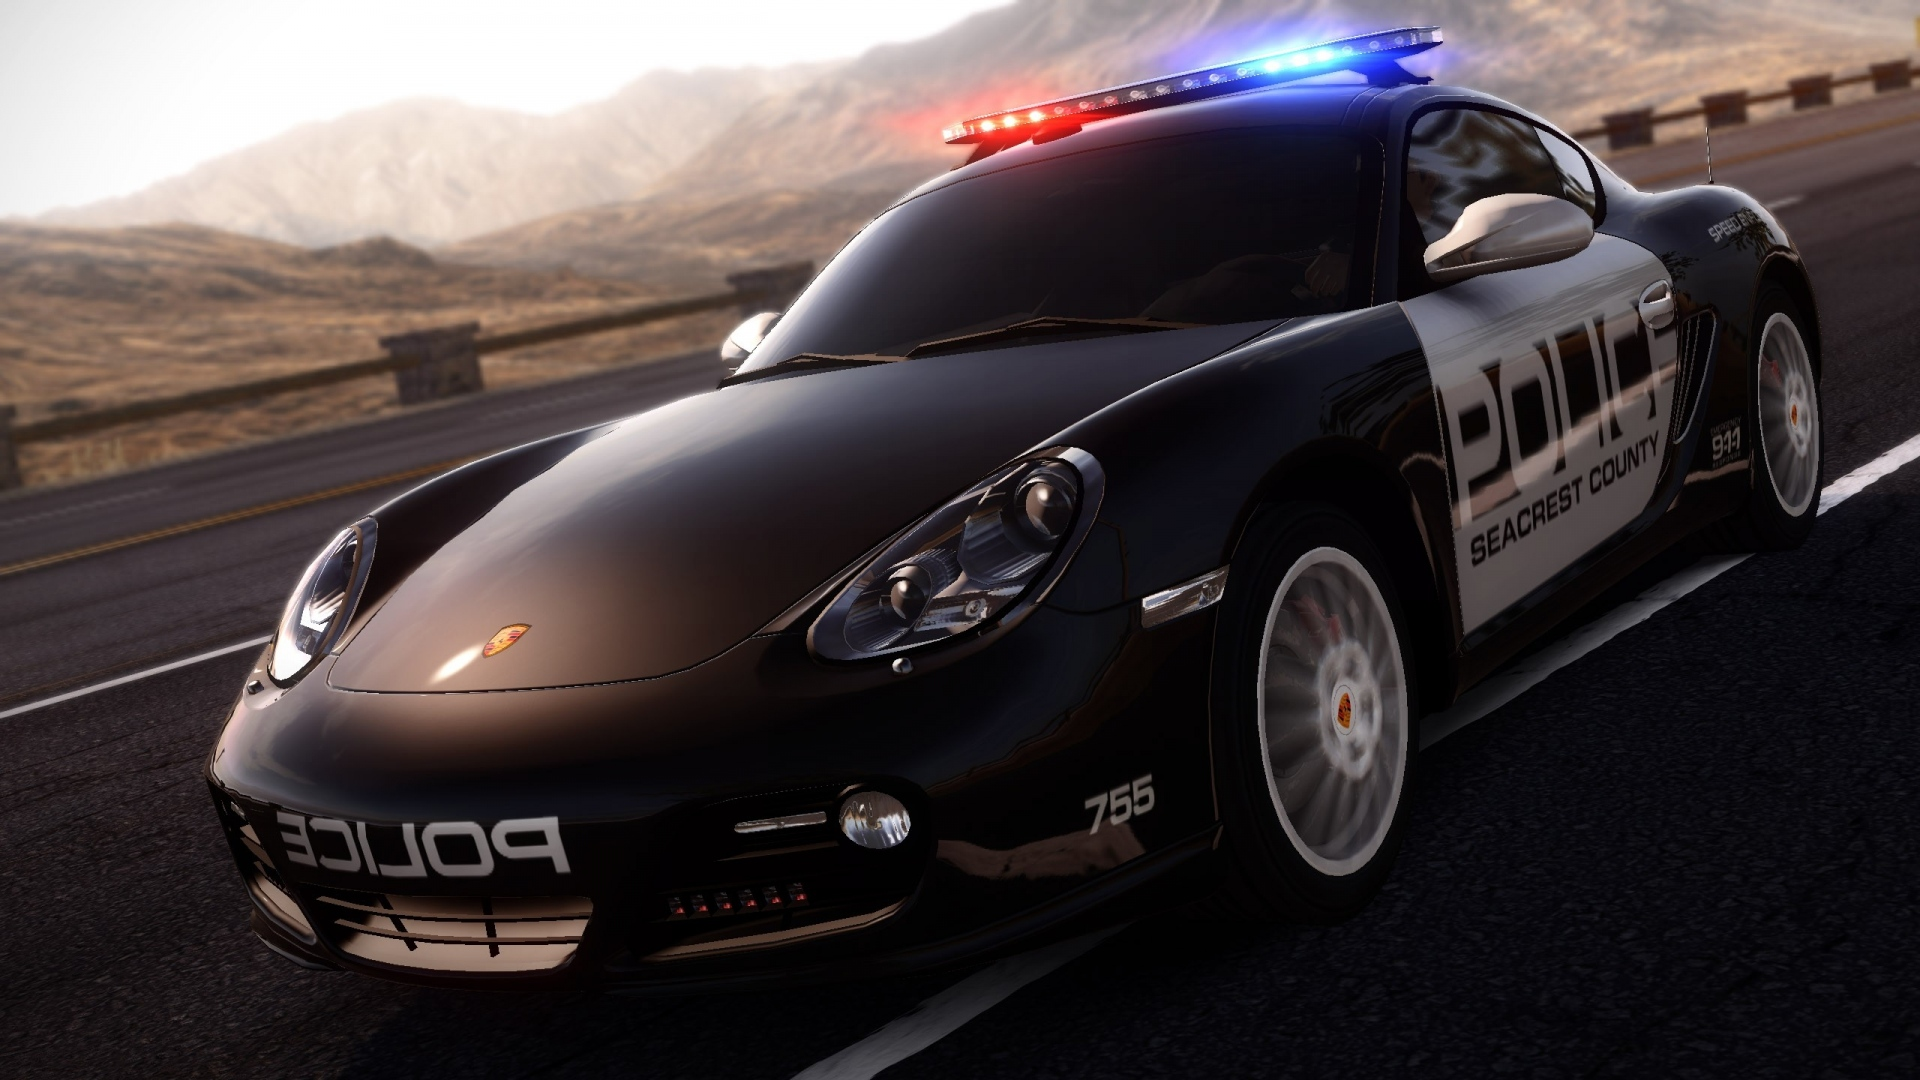 1920x1080-nfs-need-for-speed-police-road-porsche-wallpaper-wpc9001047